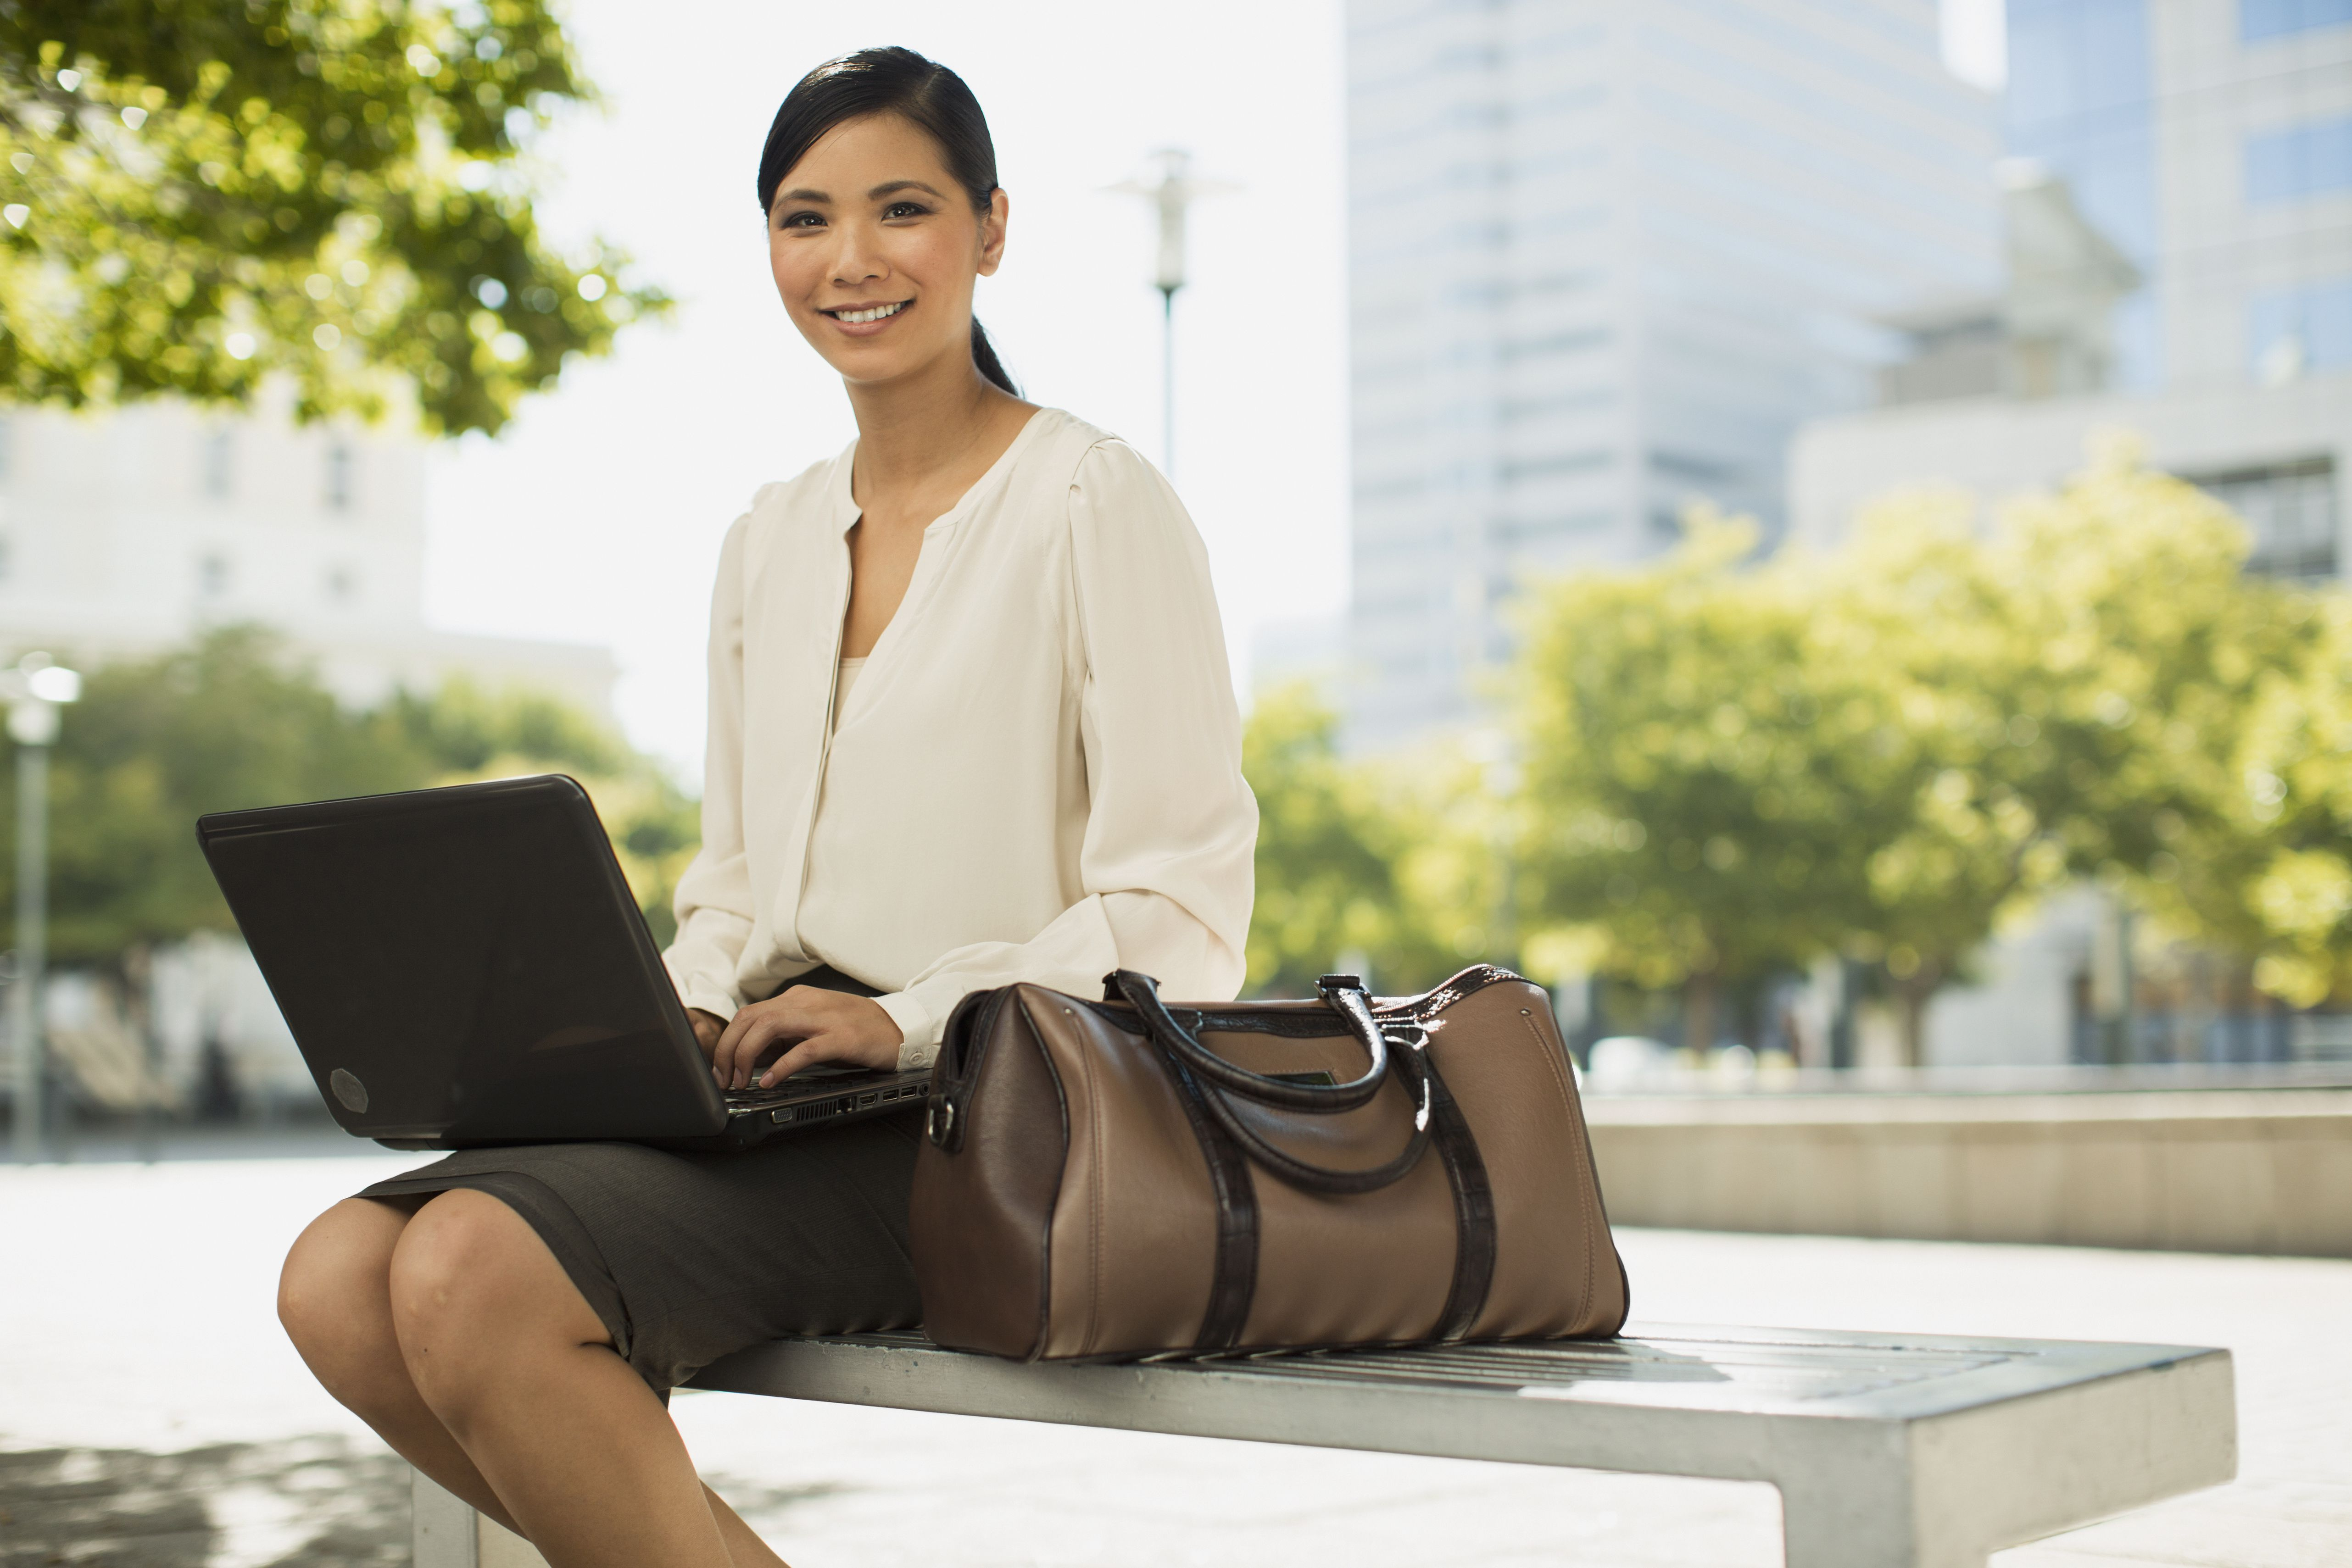 Smiling businesswoman using laptop in park wearing formal business attire.